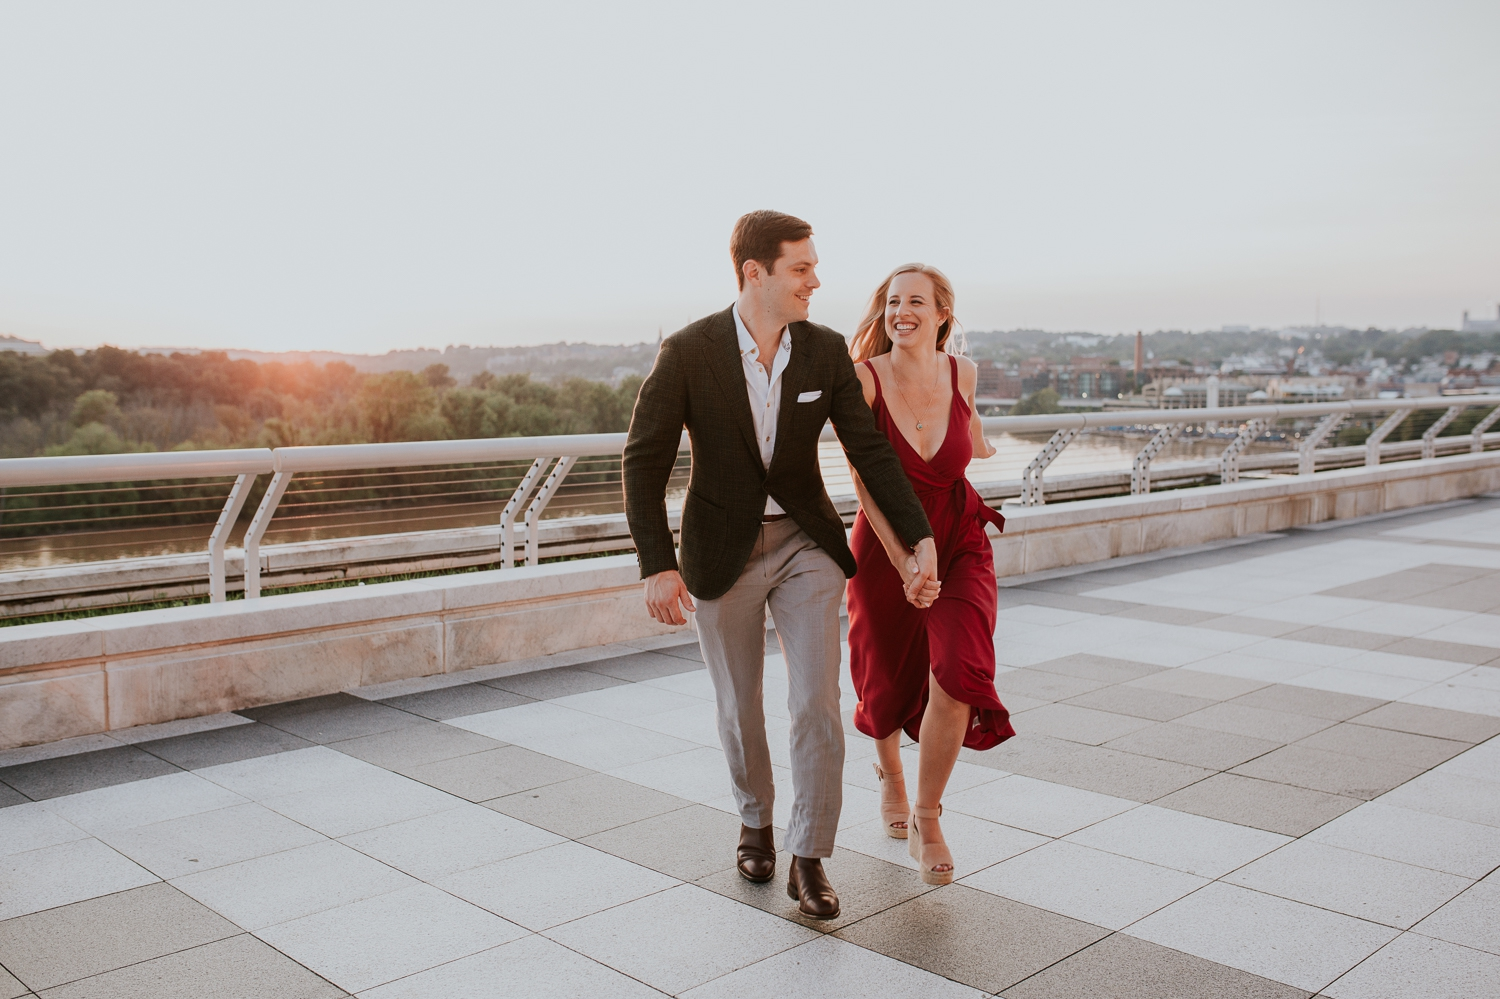 washington-dc-kennedy-center-rooftop-sunset-engagement-photography 1.jpg